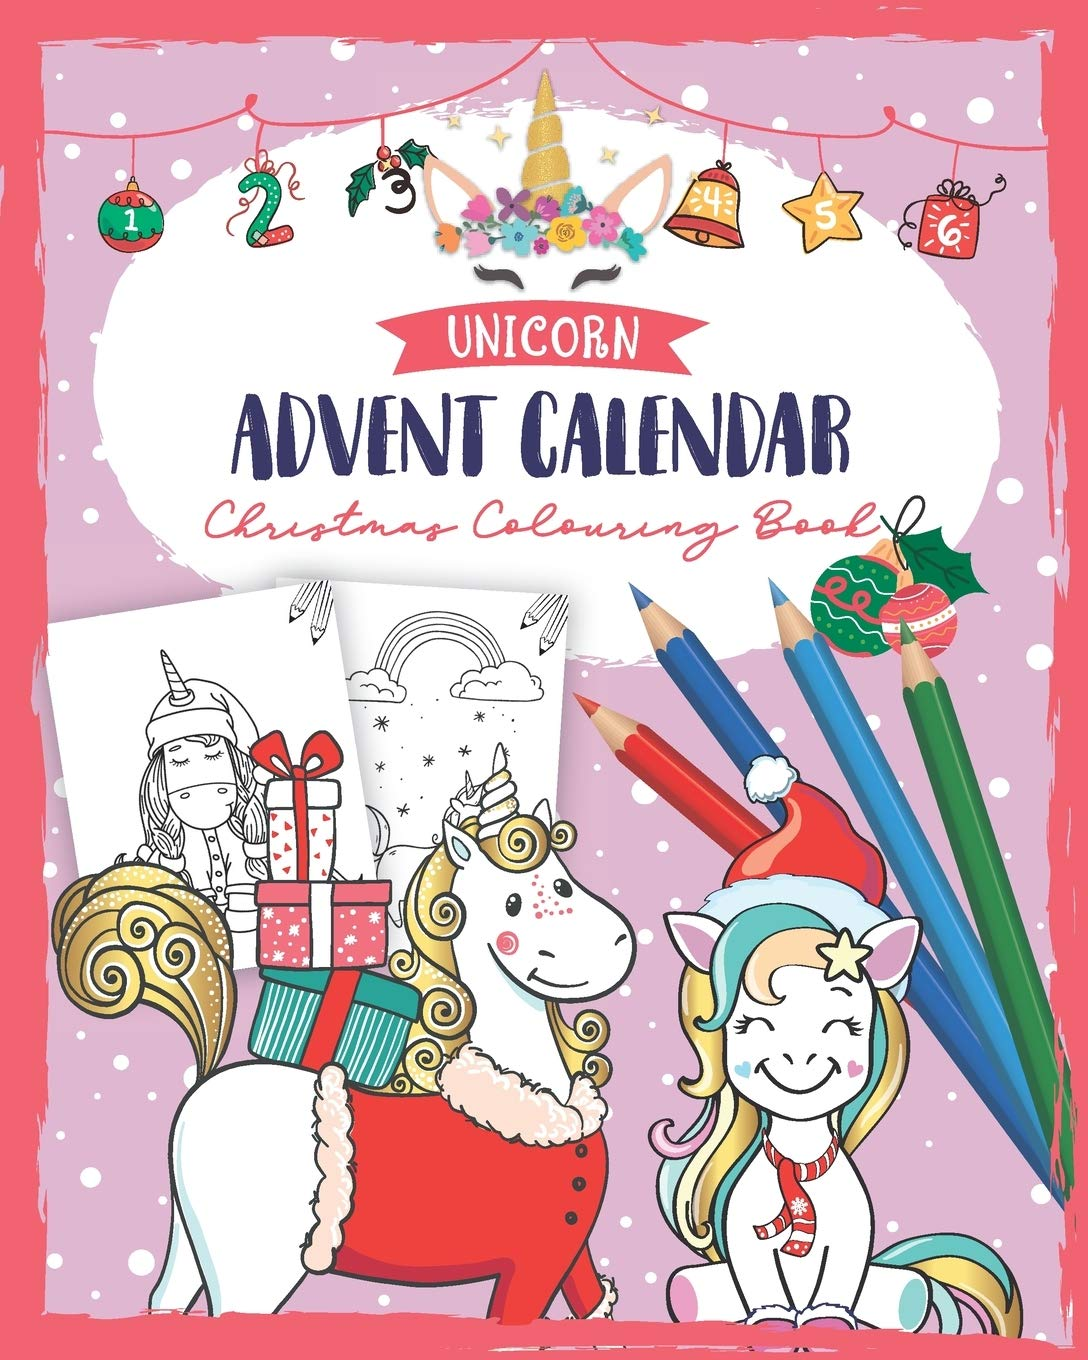 Unicorn Advent Calendar Christmas Colouring Book A Christmas Book For Children Unicorn Coloring Books For Adults And Kids With 24 Cute Unicorn Coloring Pages Coloring Advent Calendar For Kids Masimo